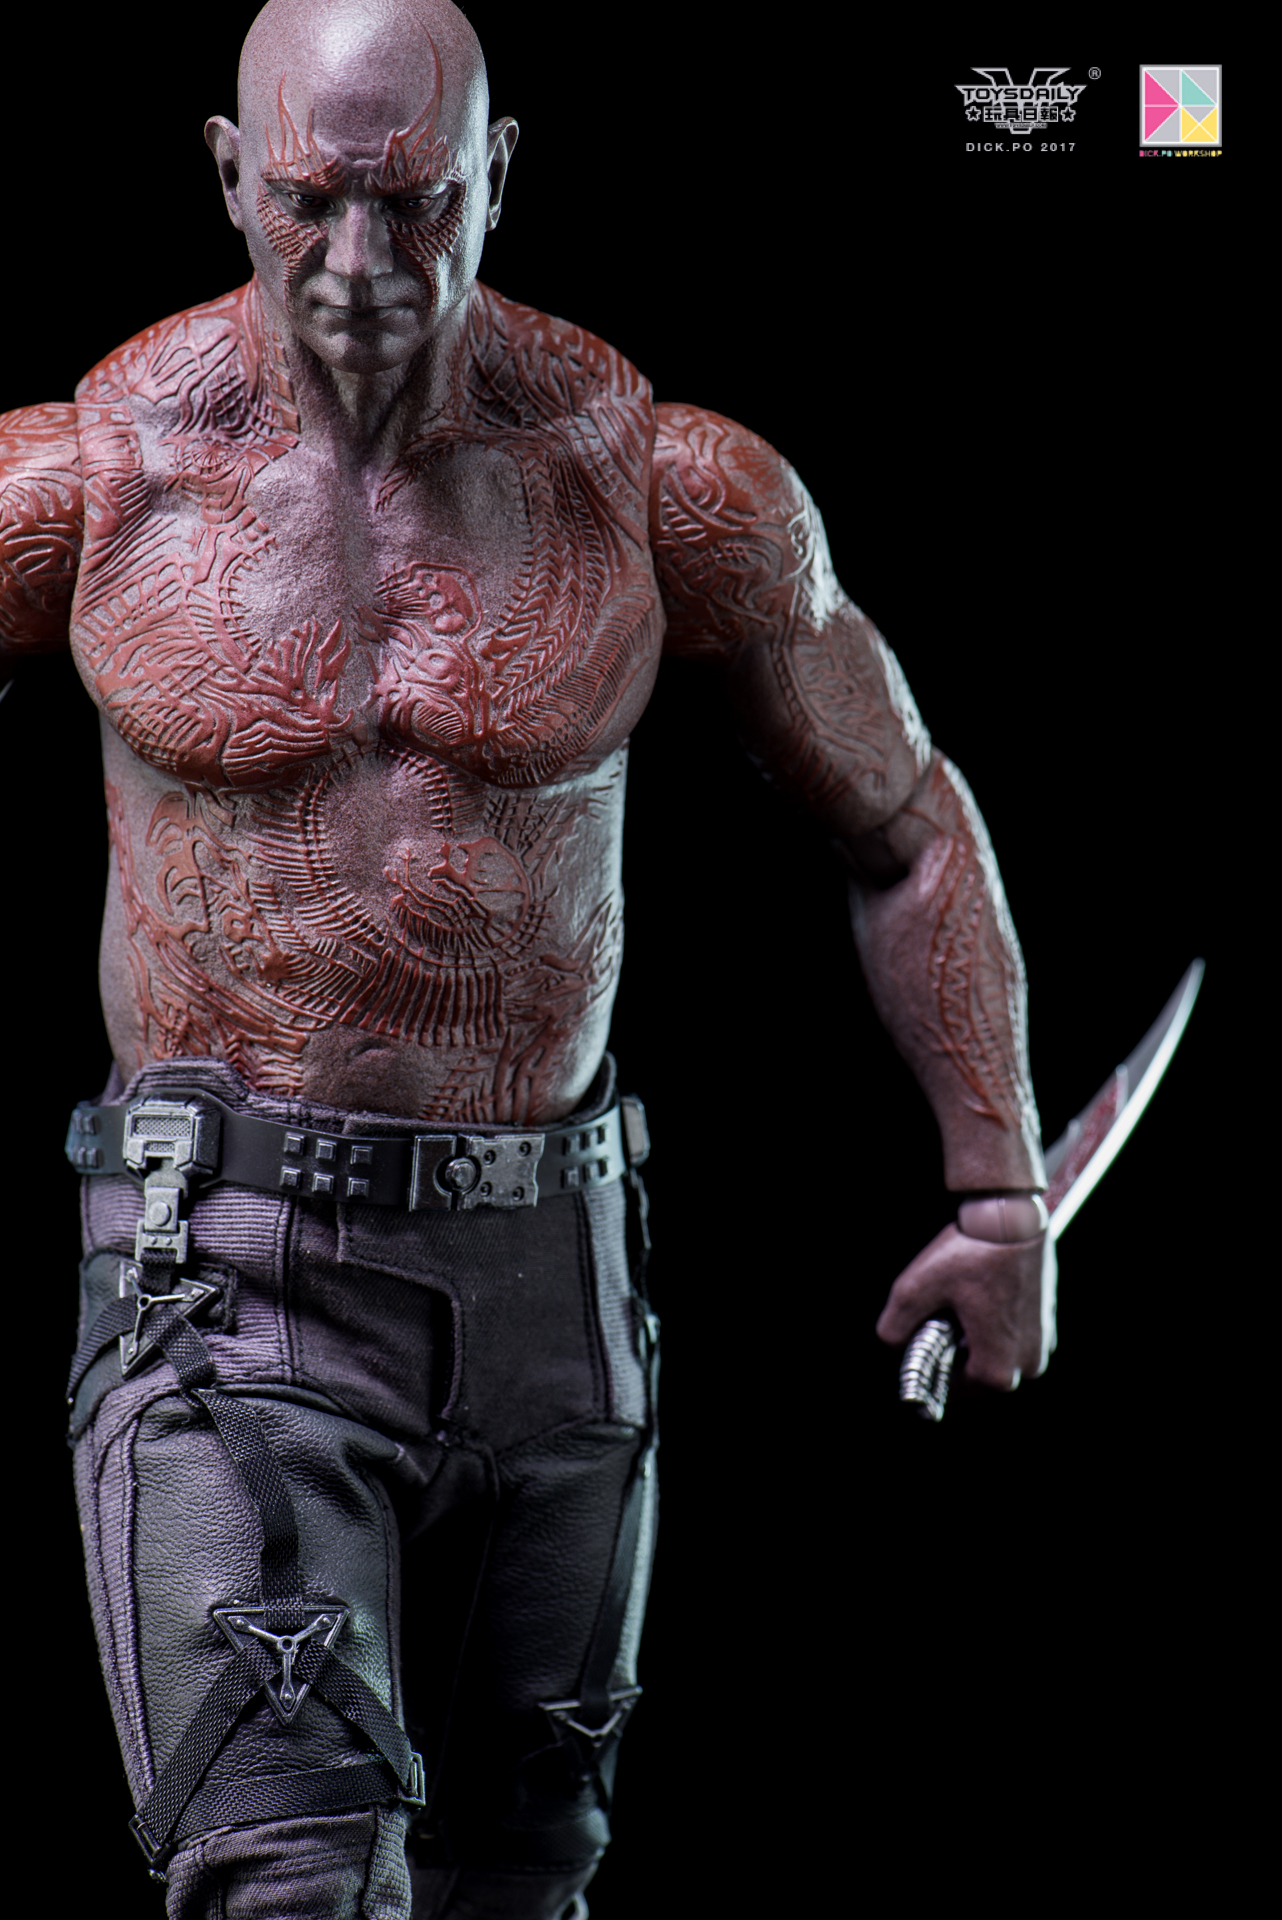 toysdaily_dick.po_Hottoys_DARX-34.jpg